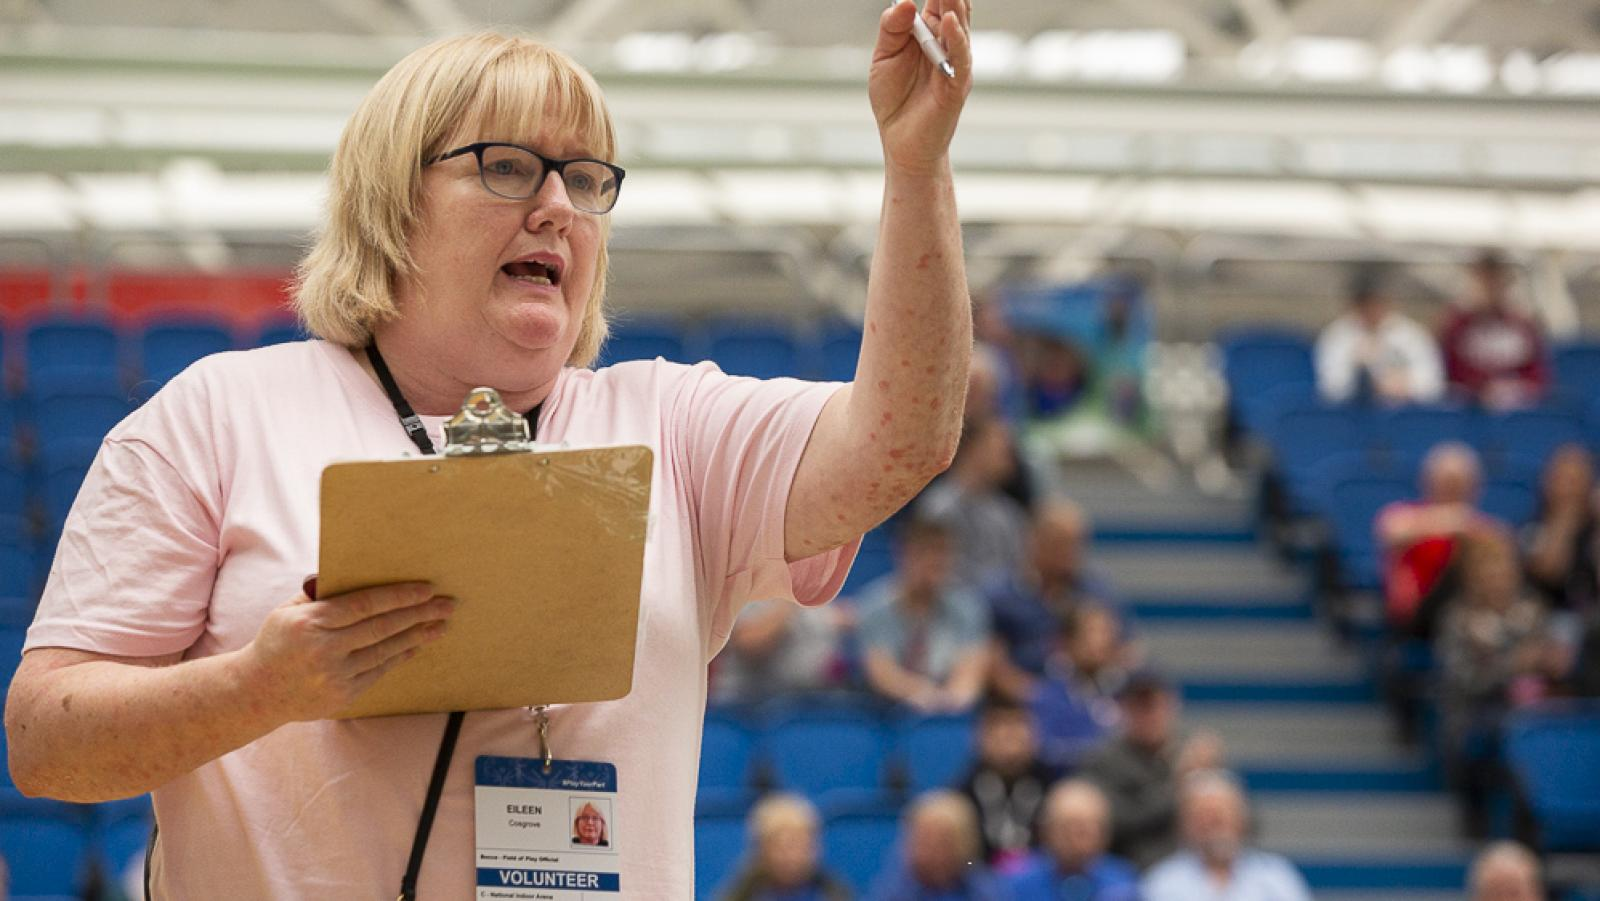 Volunteer in Administration with Special Olympics